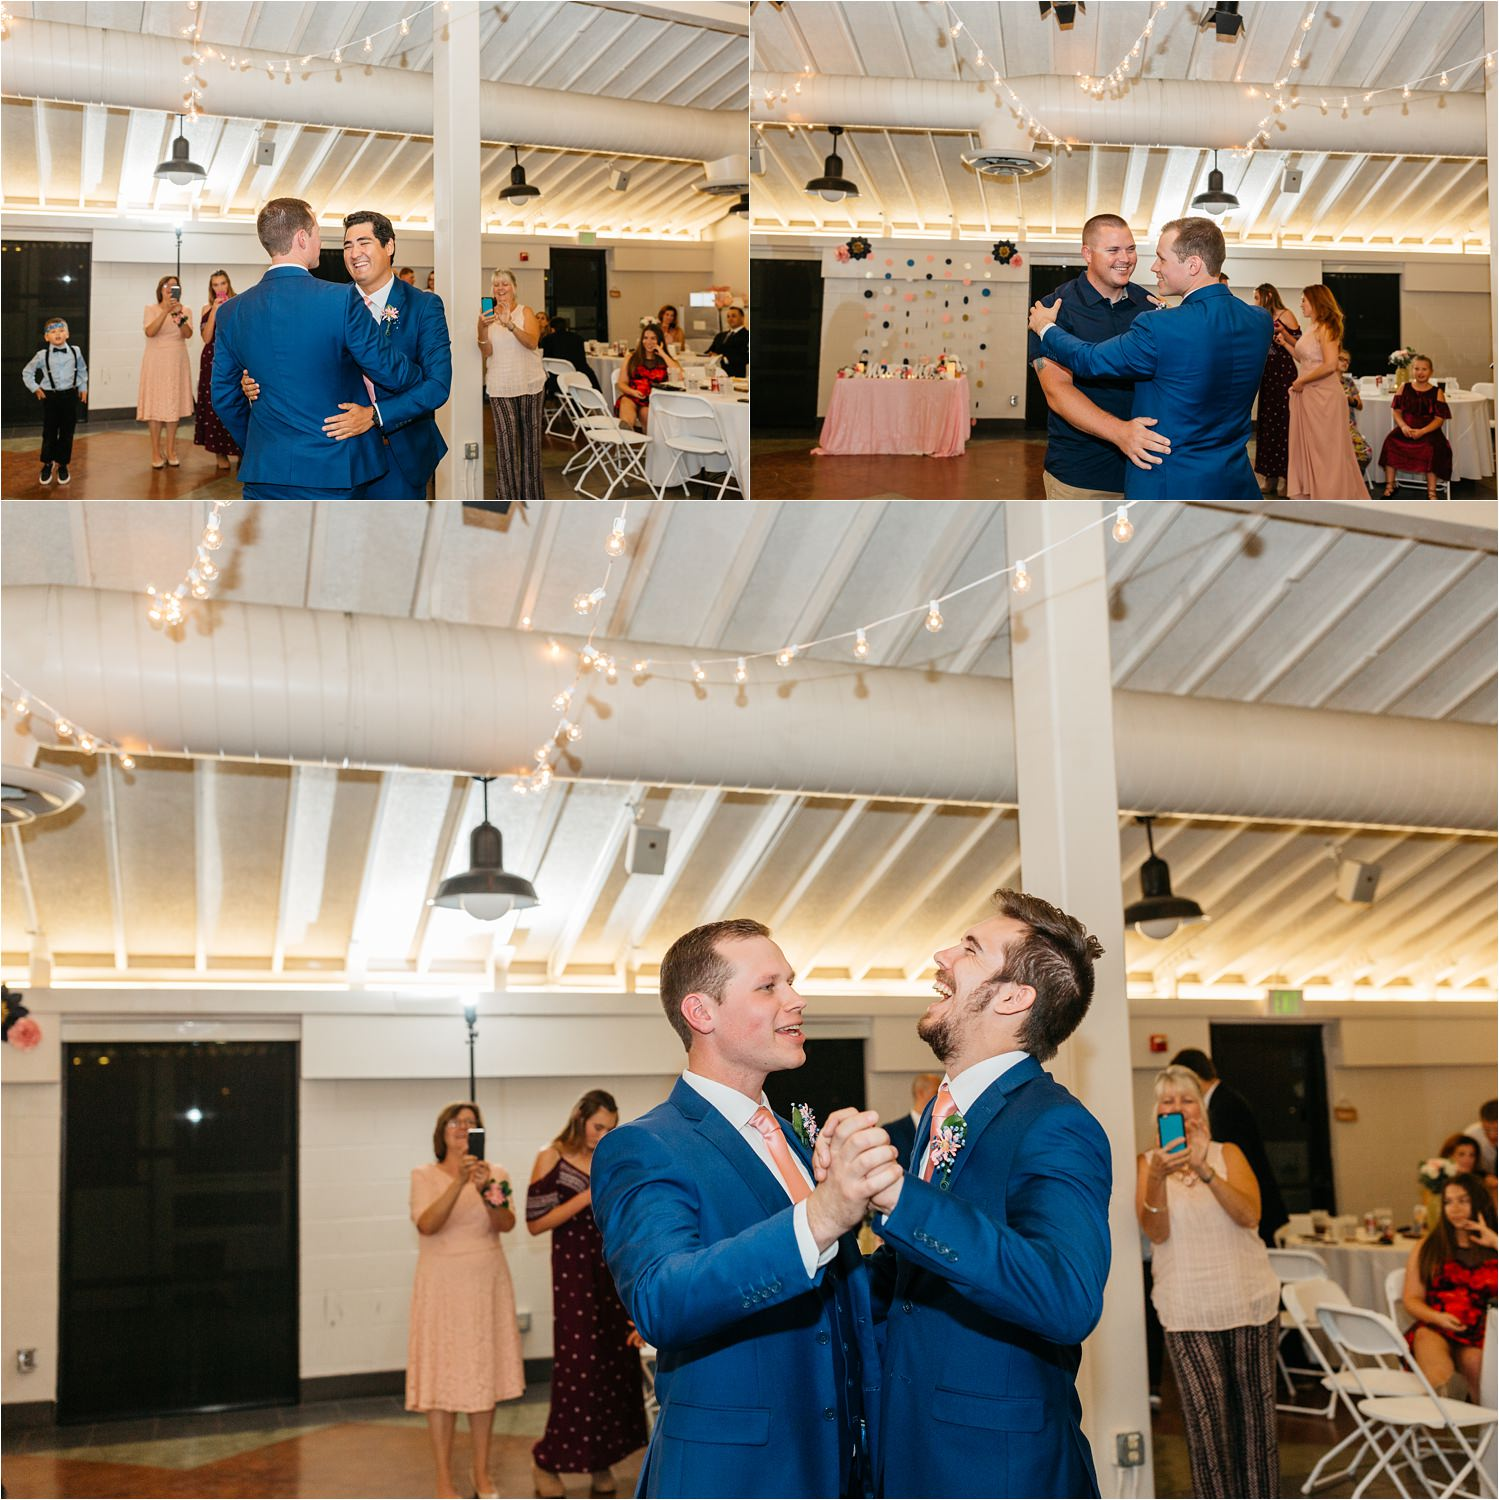 Wedding Reception at the McCoy Equestrian Center in Chino Hills, CA - https://brittneyhannonphotography.com